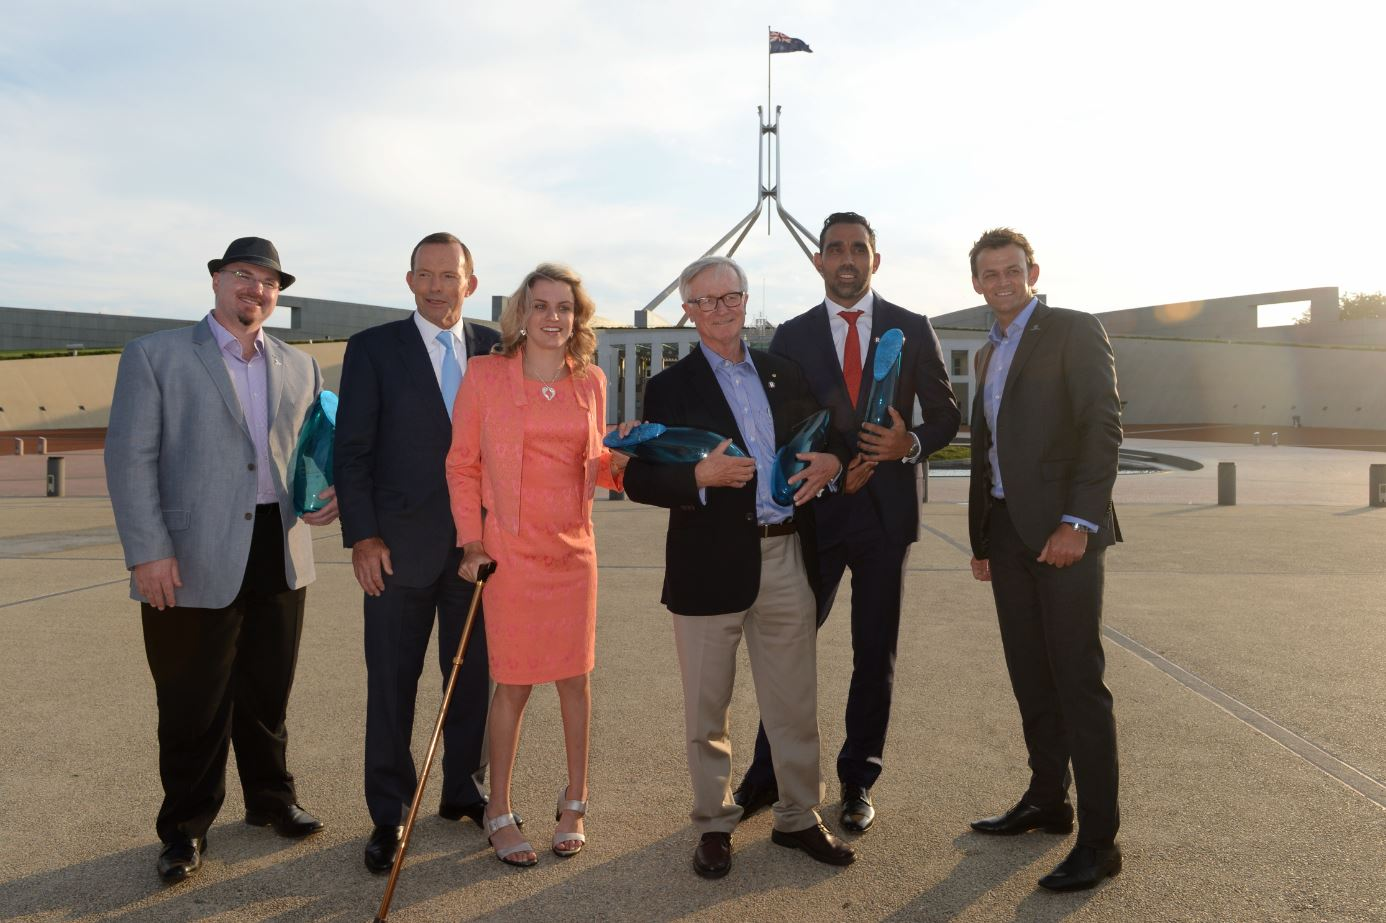 (L-R) Australia's Local Hero 2014 Tim Conolan, Prime Minister Tony Abbott, Young Australian of the Year 2014 Jacqueline Freney, Senior Australian of the Year 2014 Fred Chaney, Australian of the Year 2014 Adam Goodes and chair of National Australia Day Council Adam Gilchrist pose for a photograph after a ceremony at Parliament House in Canberra, Saturday, Jan. 25, 2014.